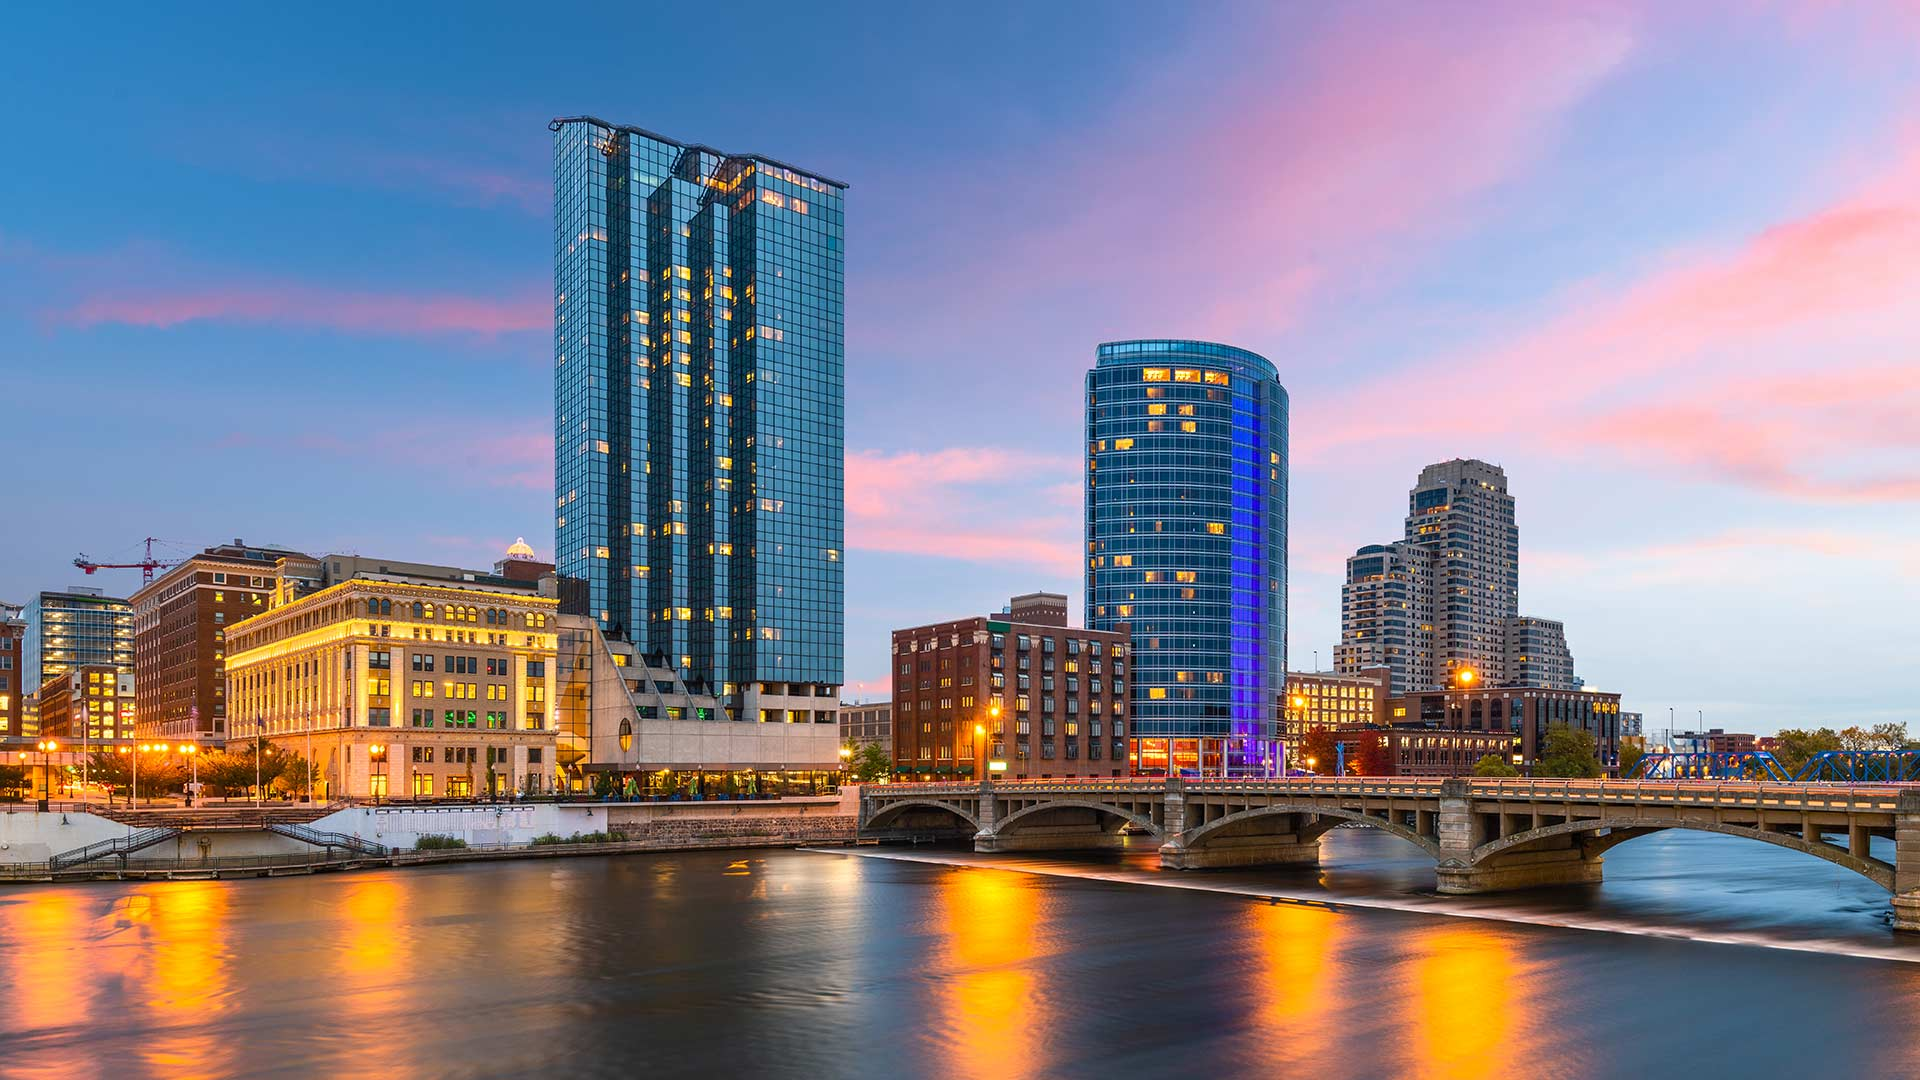 Panorama to illustrate dating in grand rapids